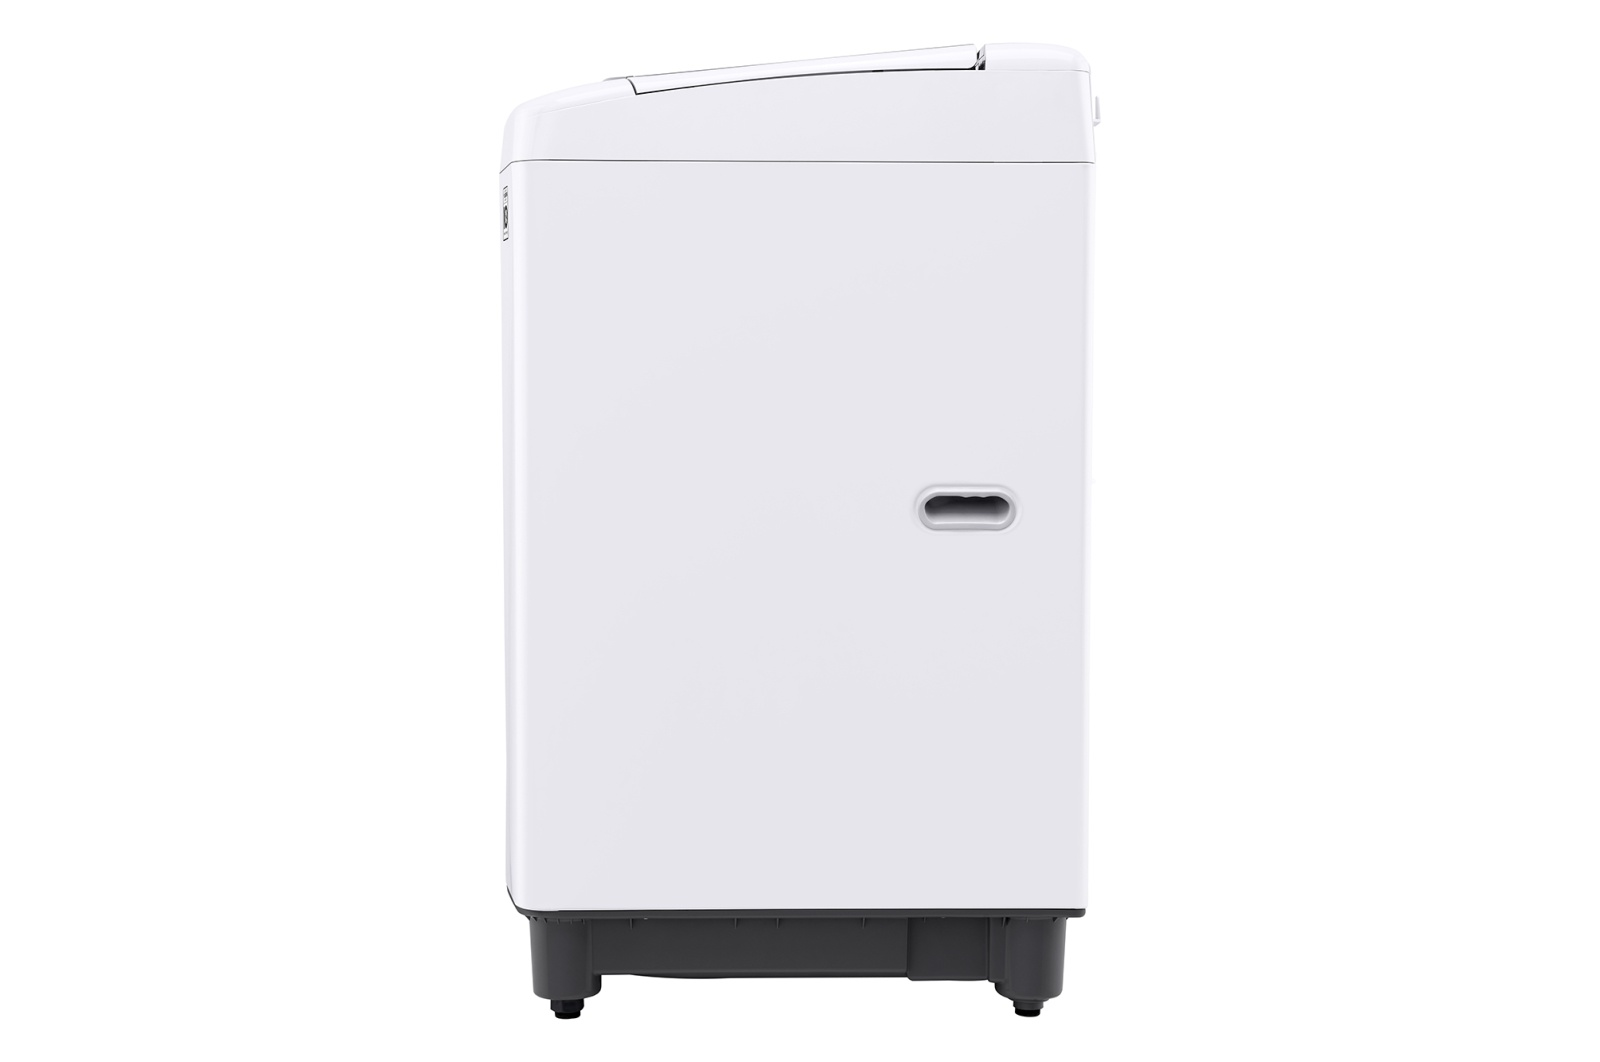 LG TopLoad Washer 6.5Kg Inverter Motor White Finish 3 Star Water 2 Year Wty